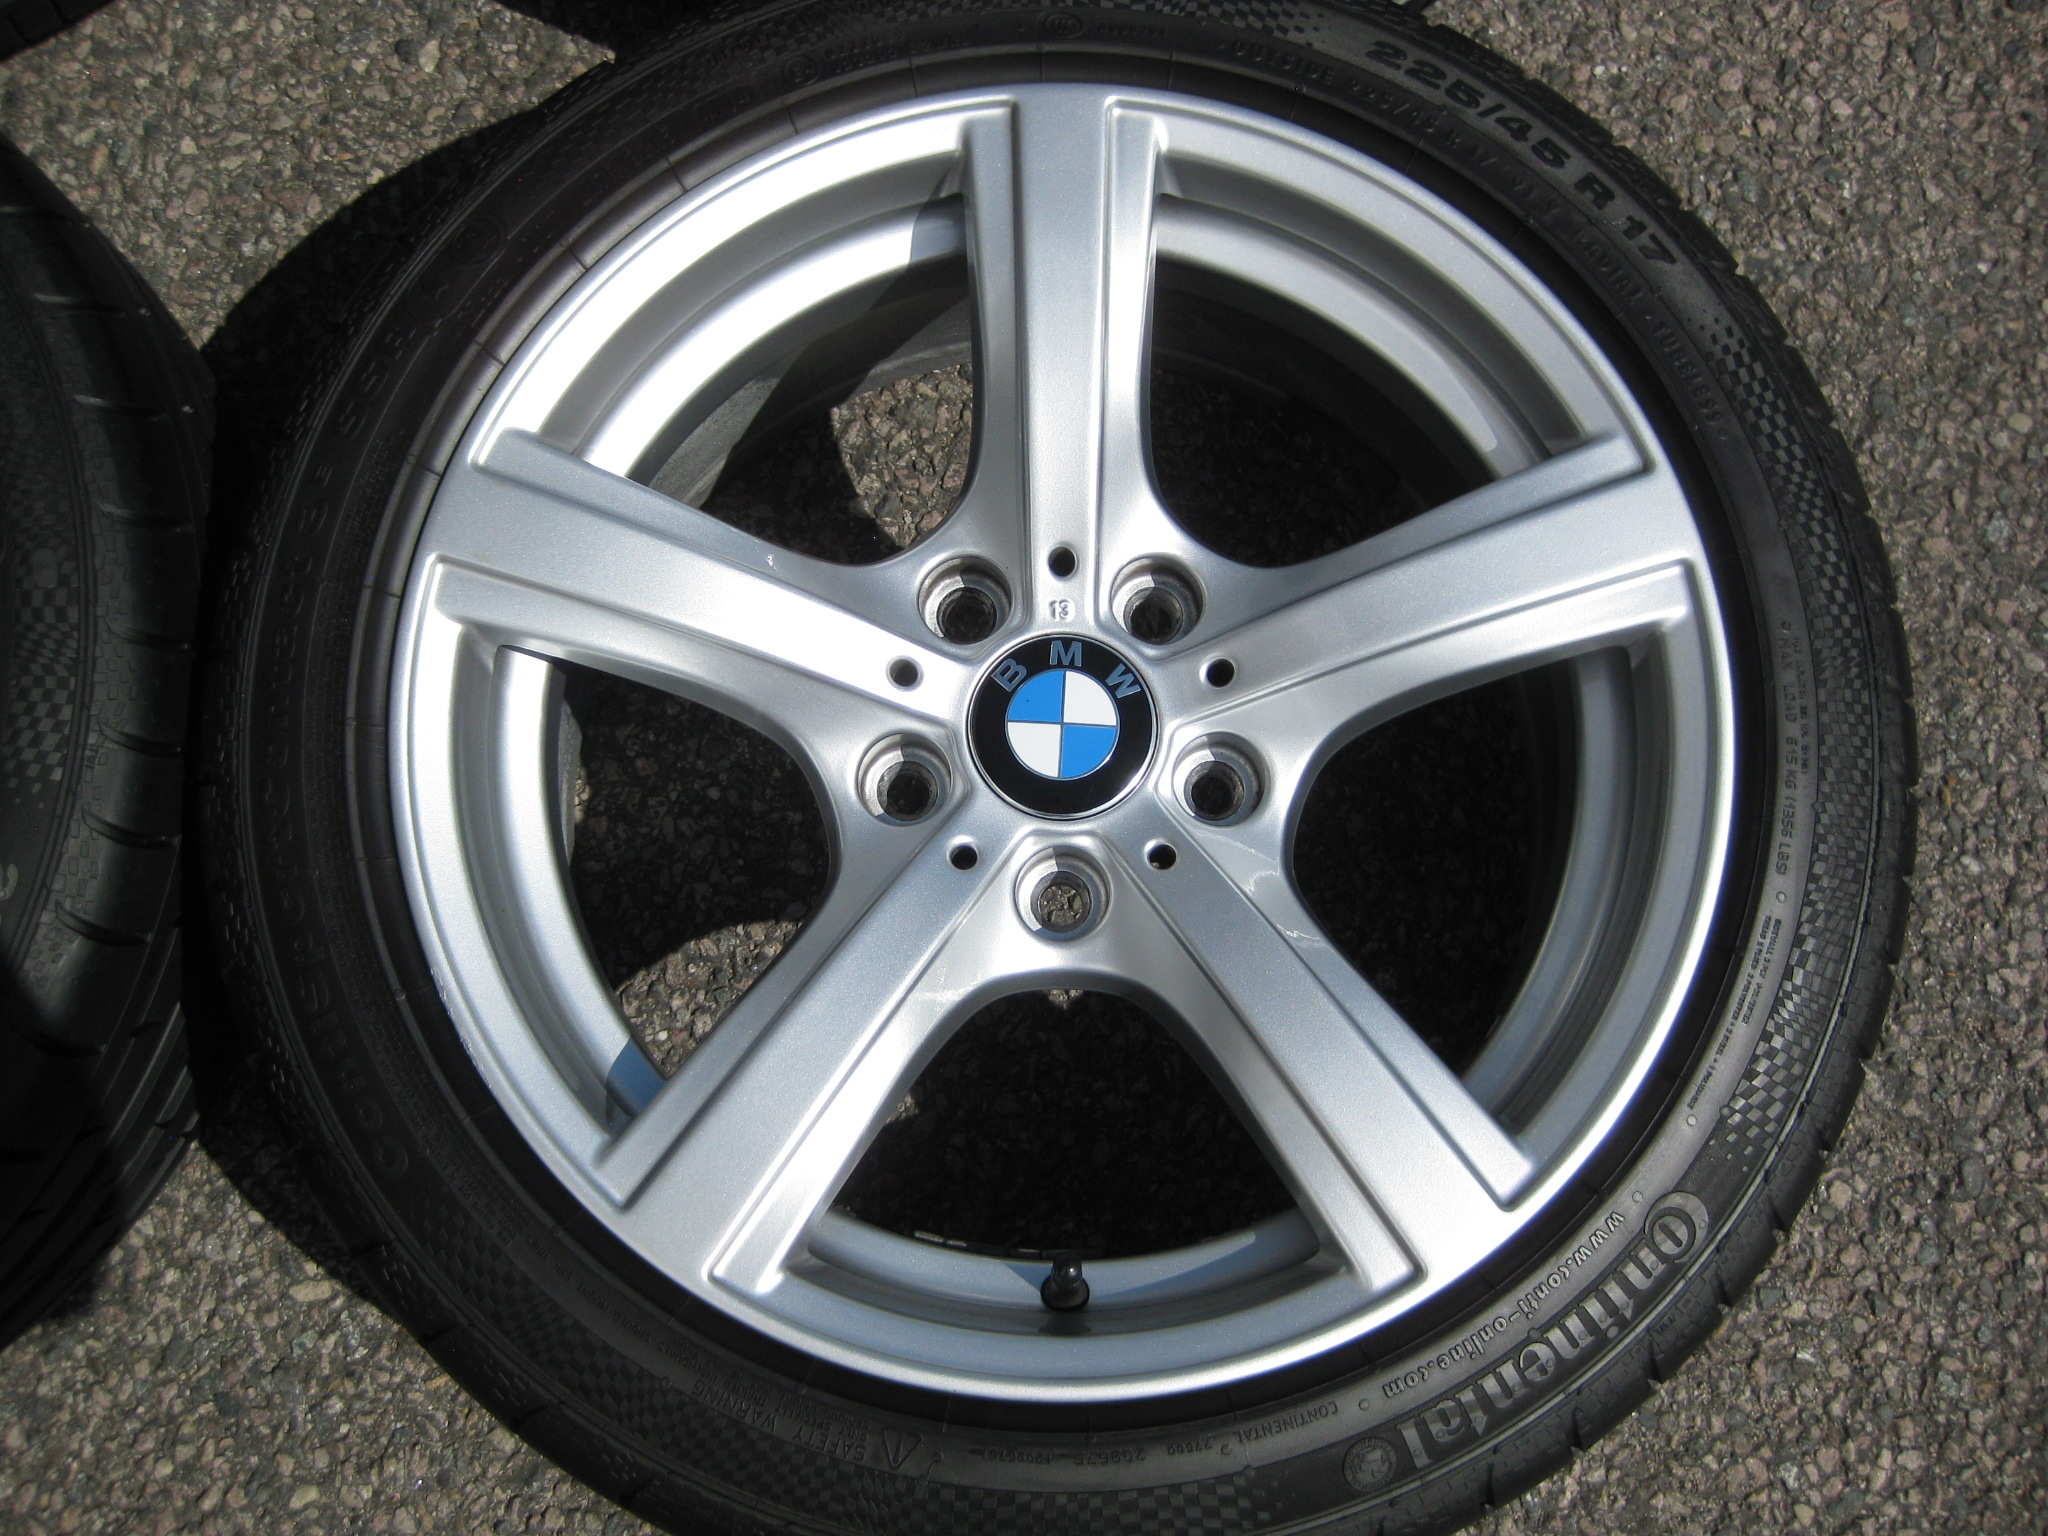 Used 17 Quot Genuine Style 290 E89 Z4 5 Spoke Alloys Very Good